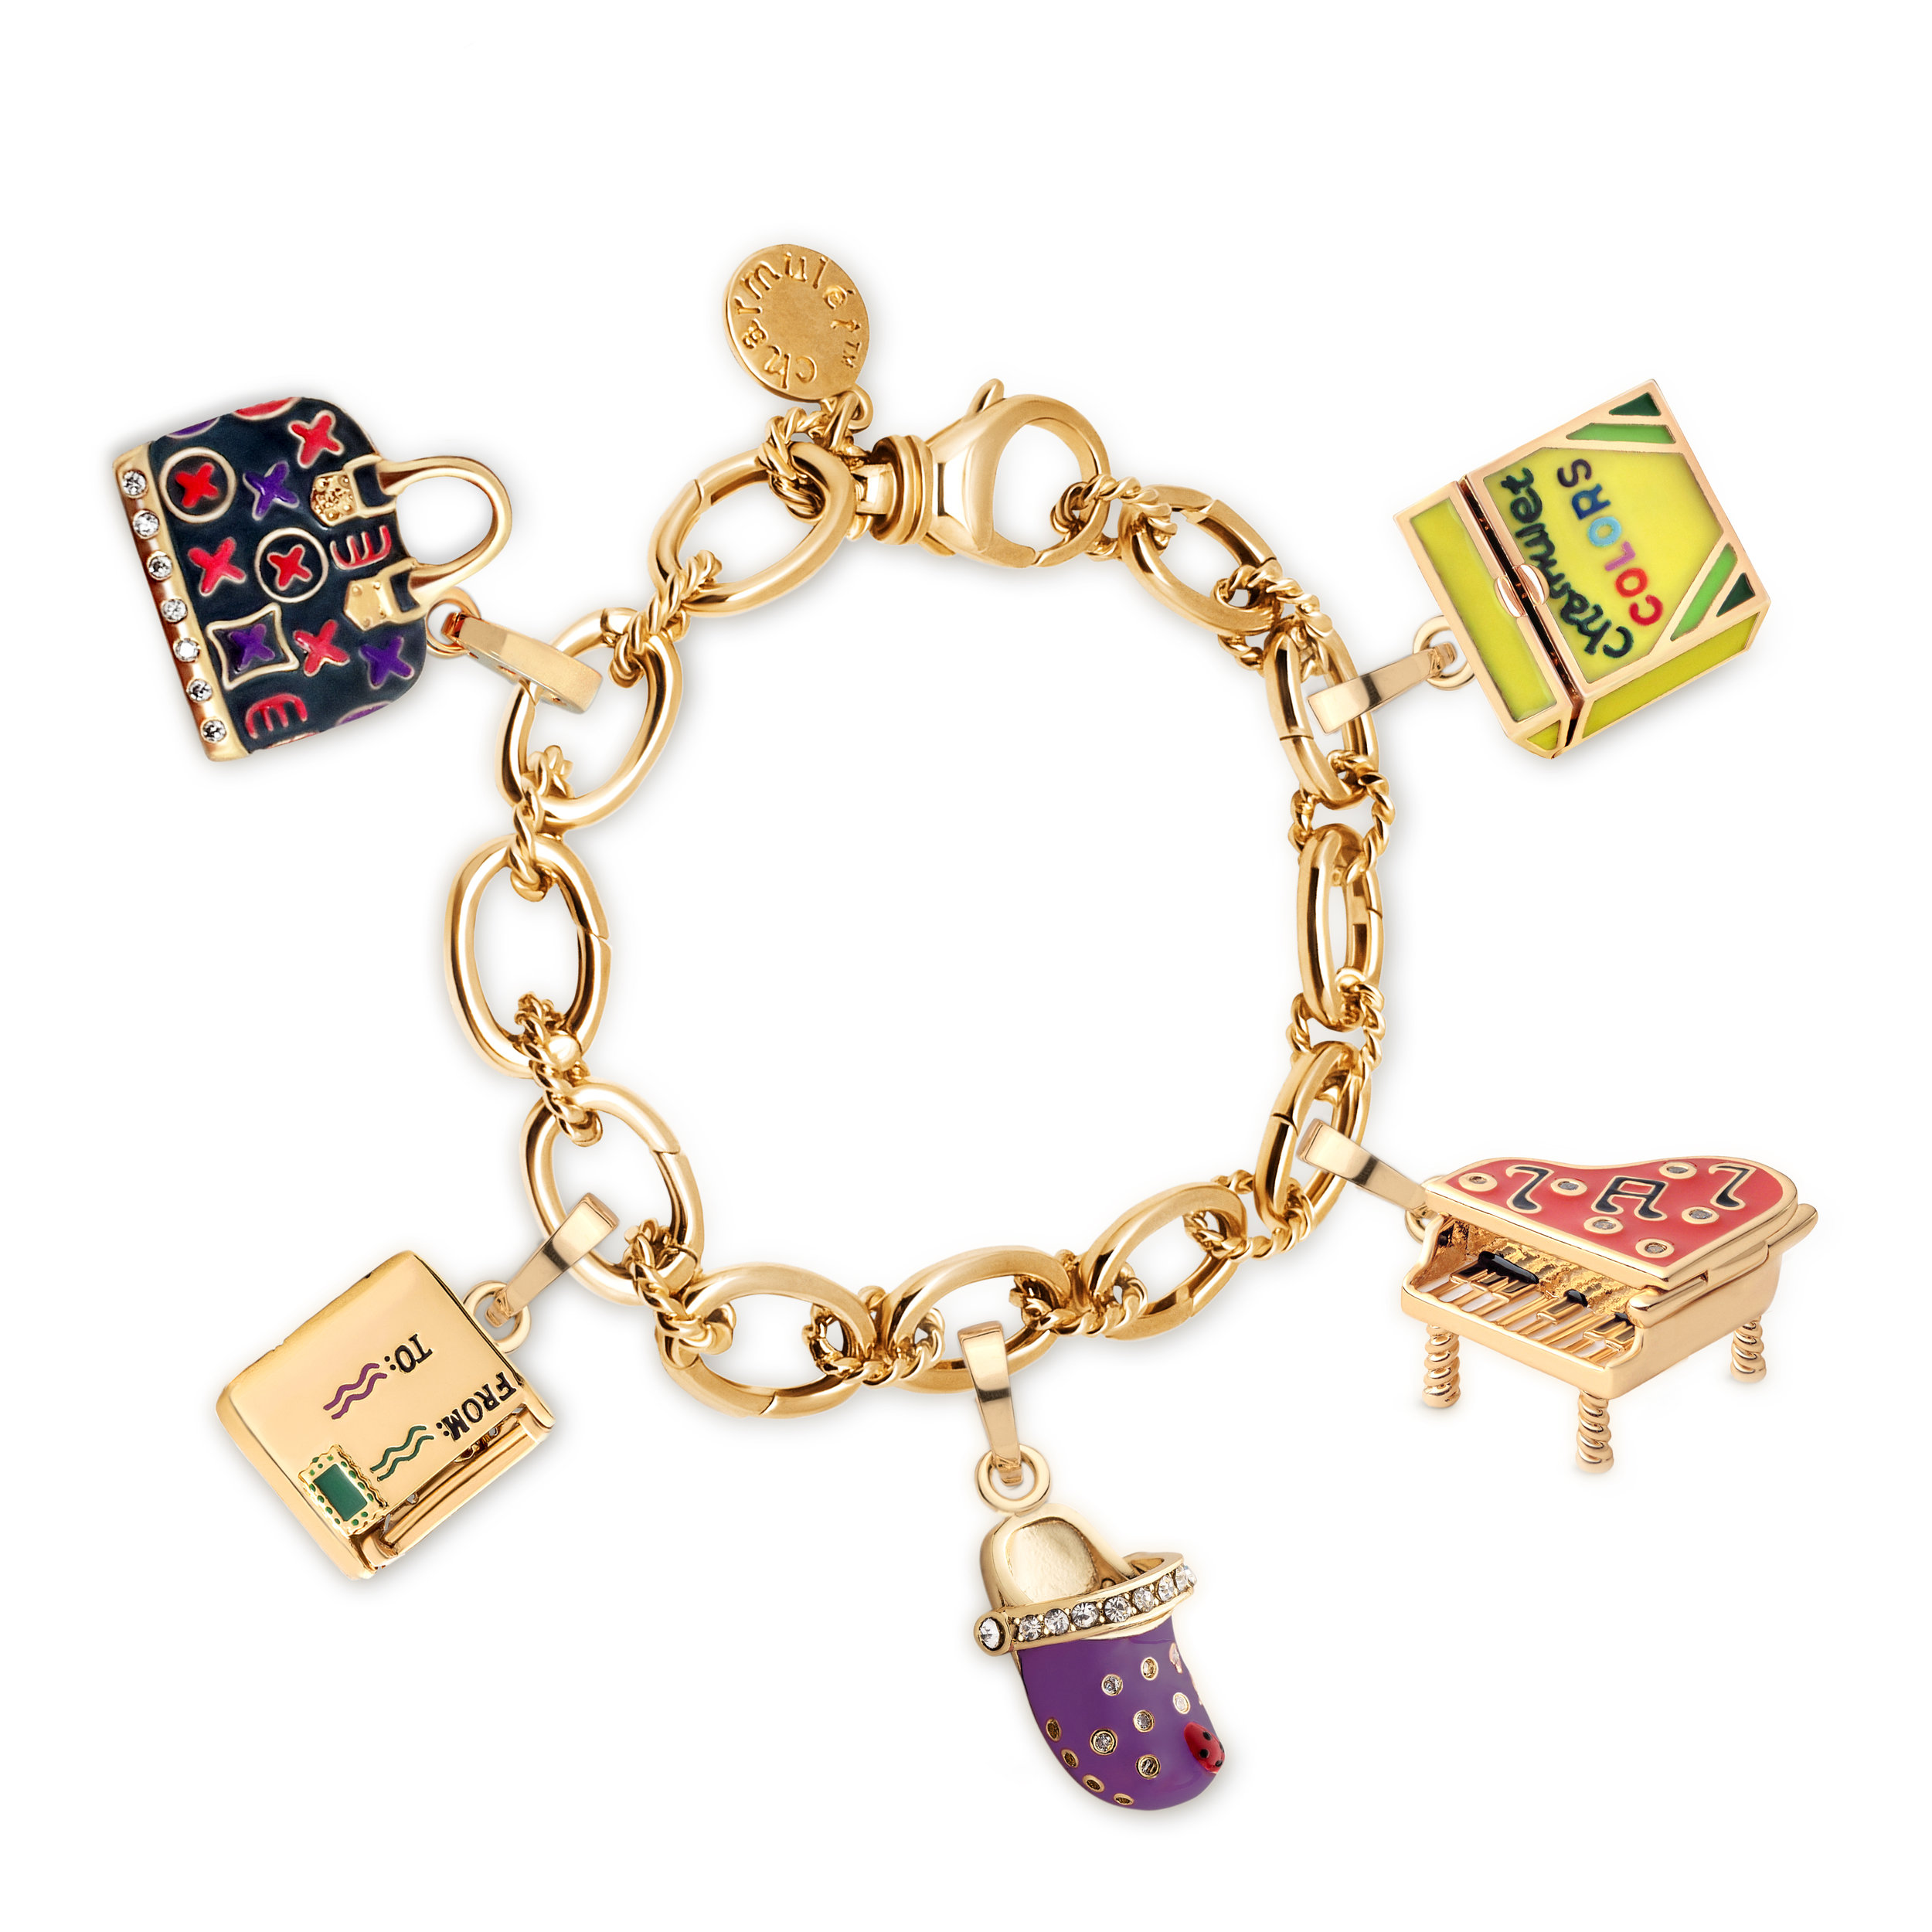 5-charms-on-bracelet-(grey-pocketbook-crayons-piano-purple-croc-envelop)-(around) white.jpg